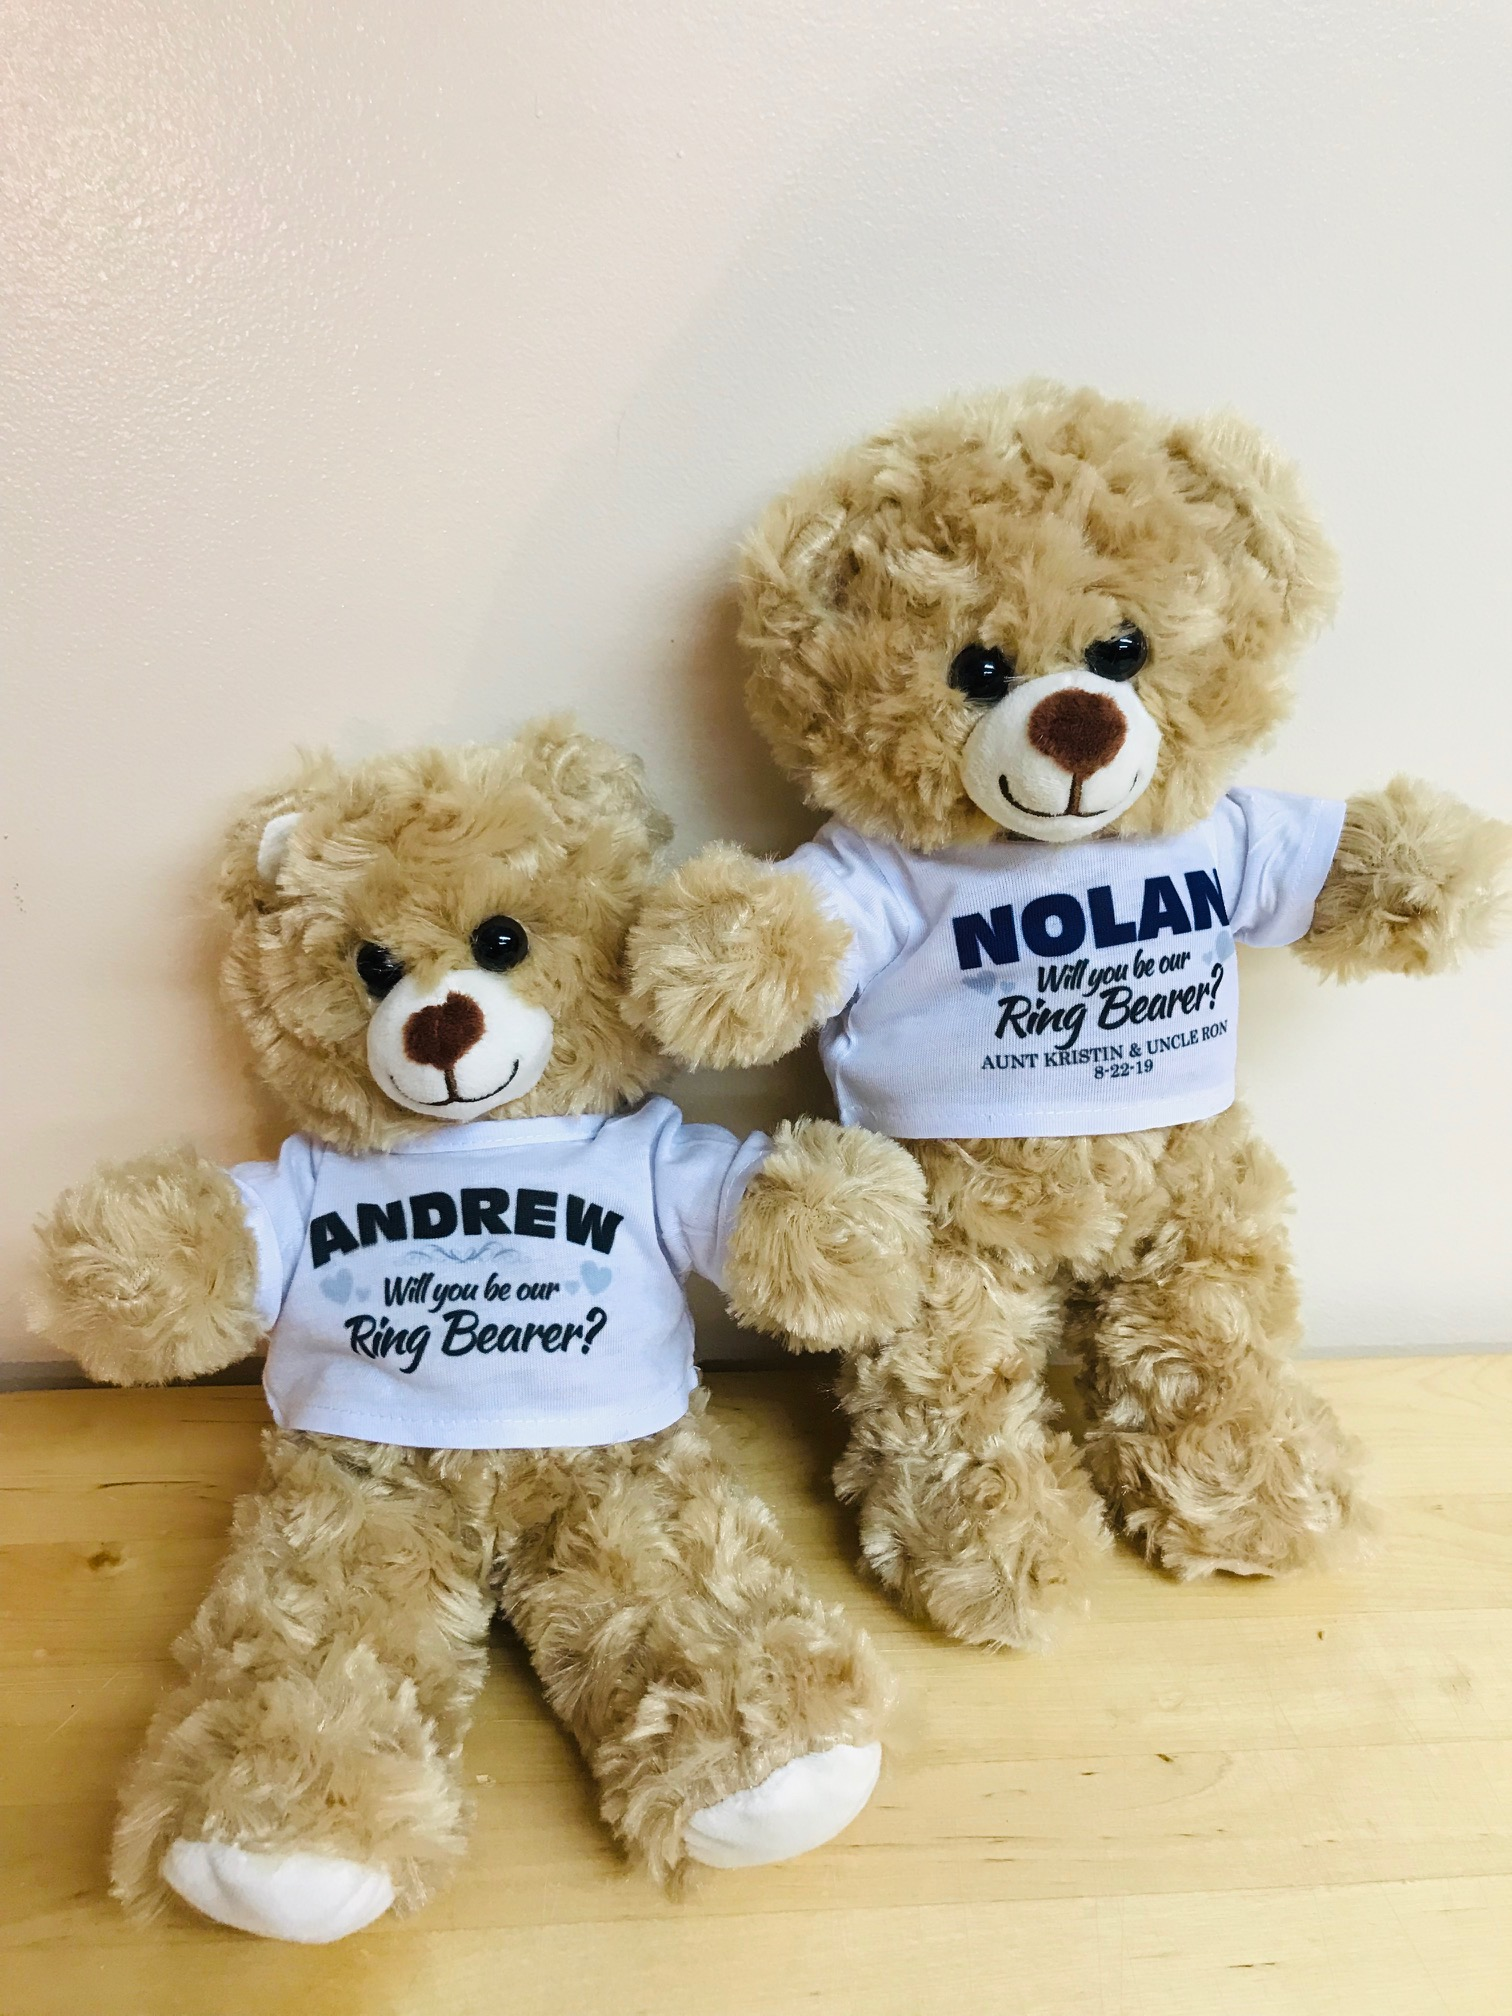 Ring Bearer Proposal Gift Sloth with Personalized Shirt Will You Be My Keepsake Stuffed Sloth for Boys